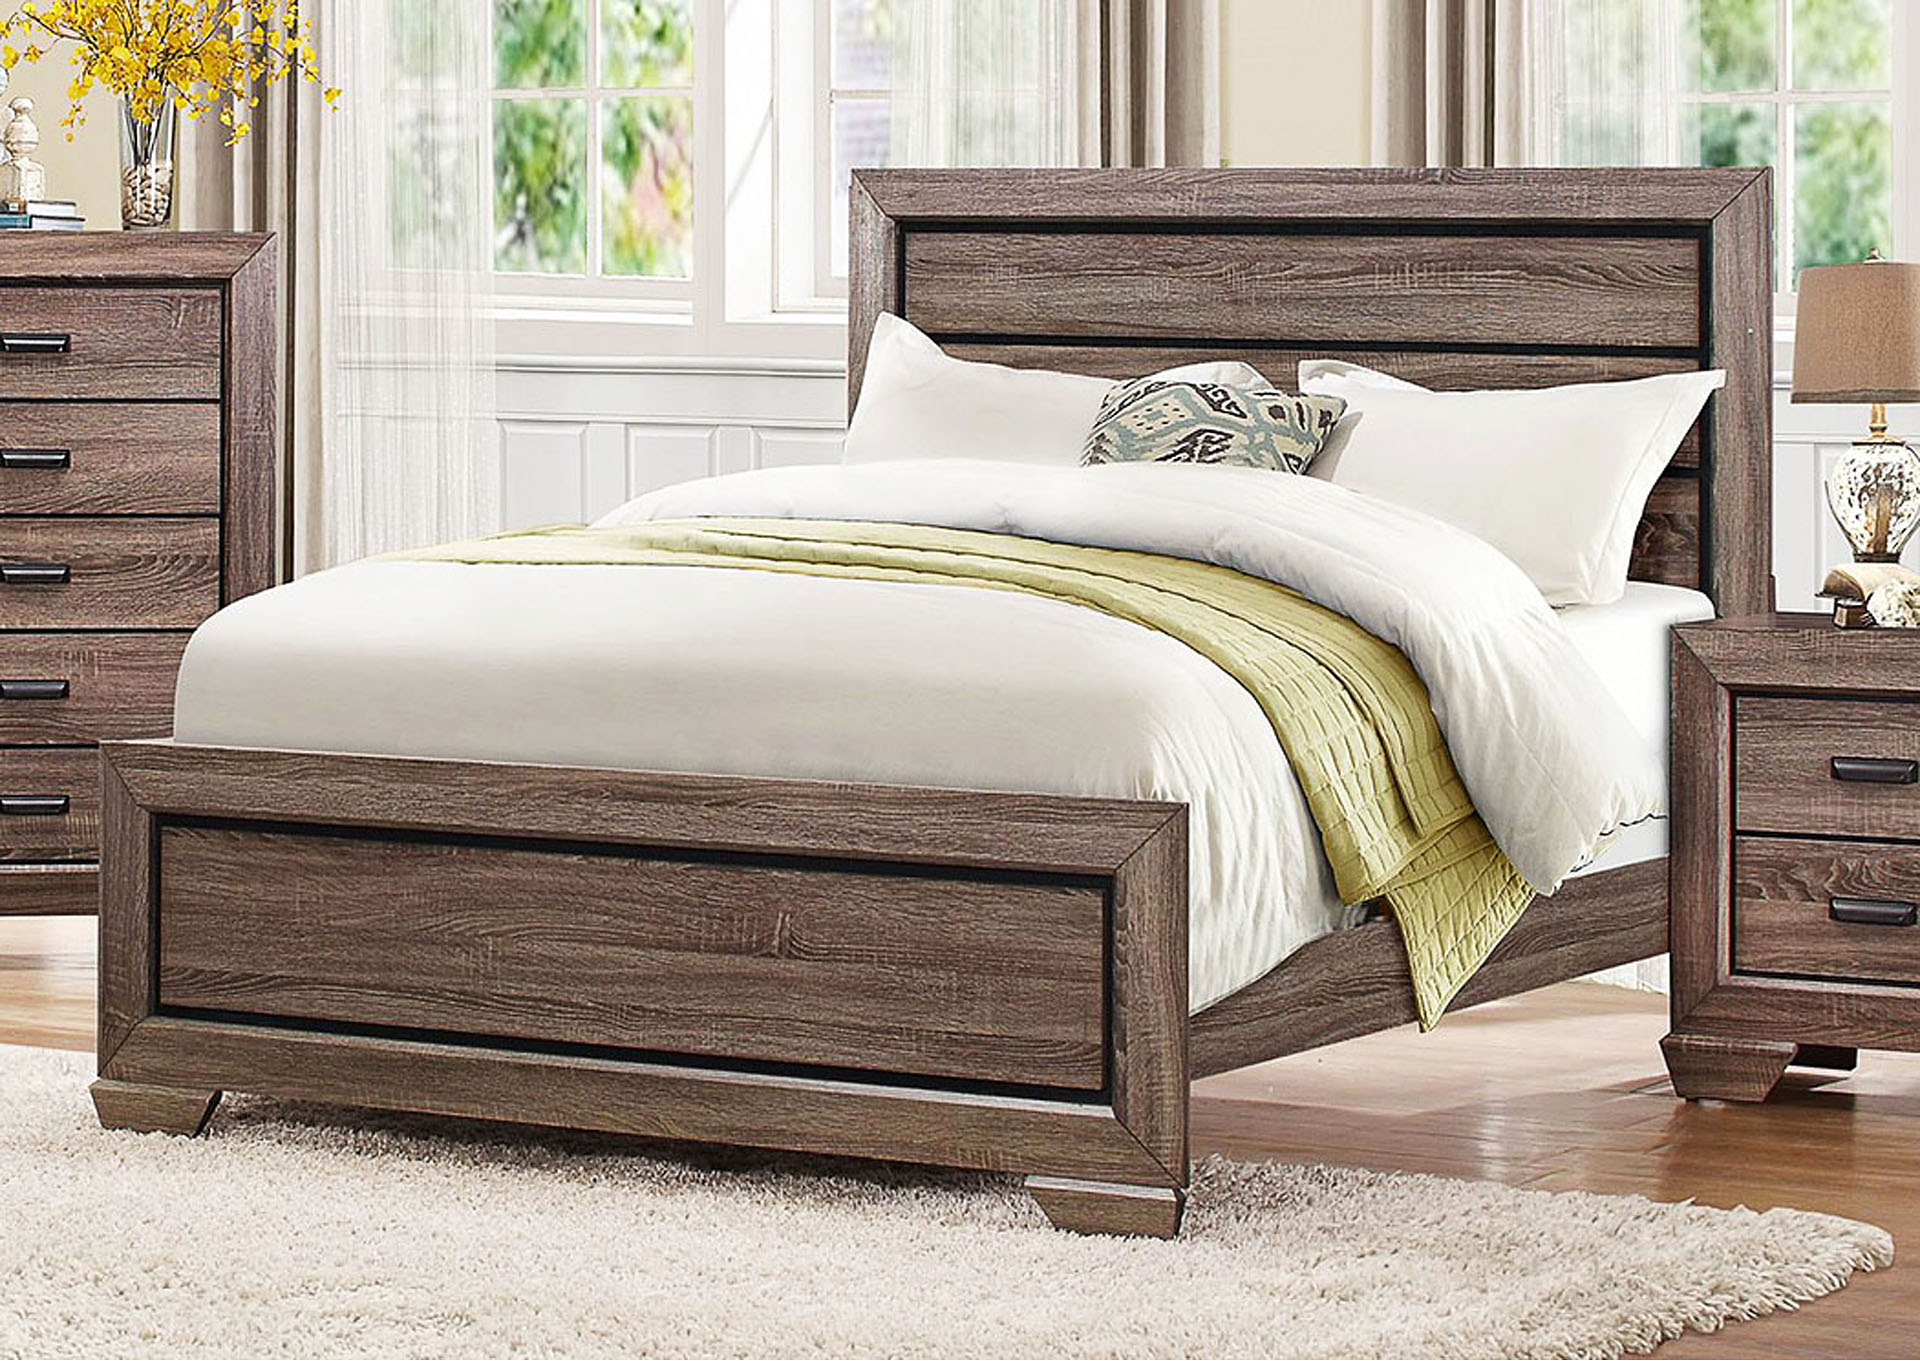 California King Bed,Homelegance